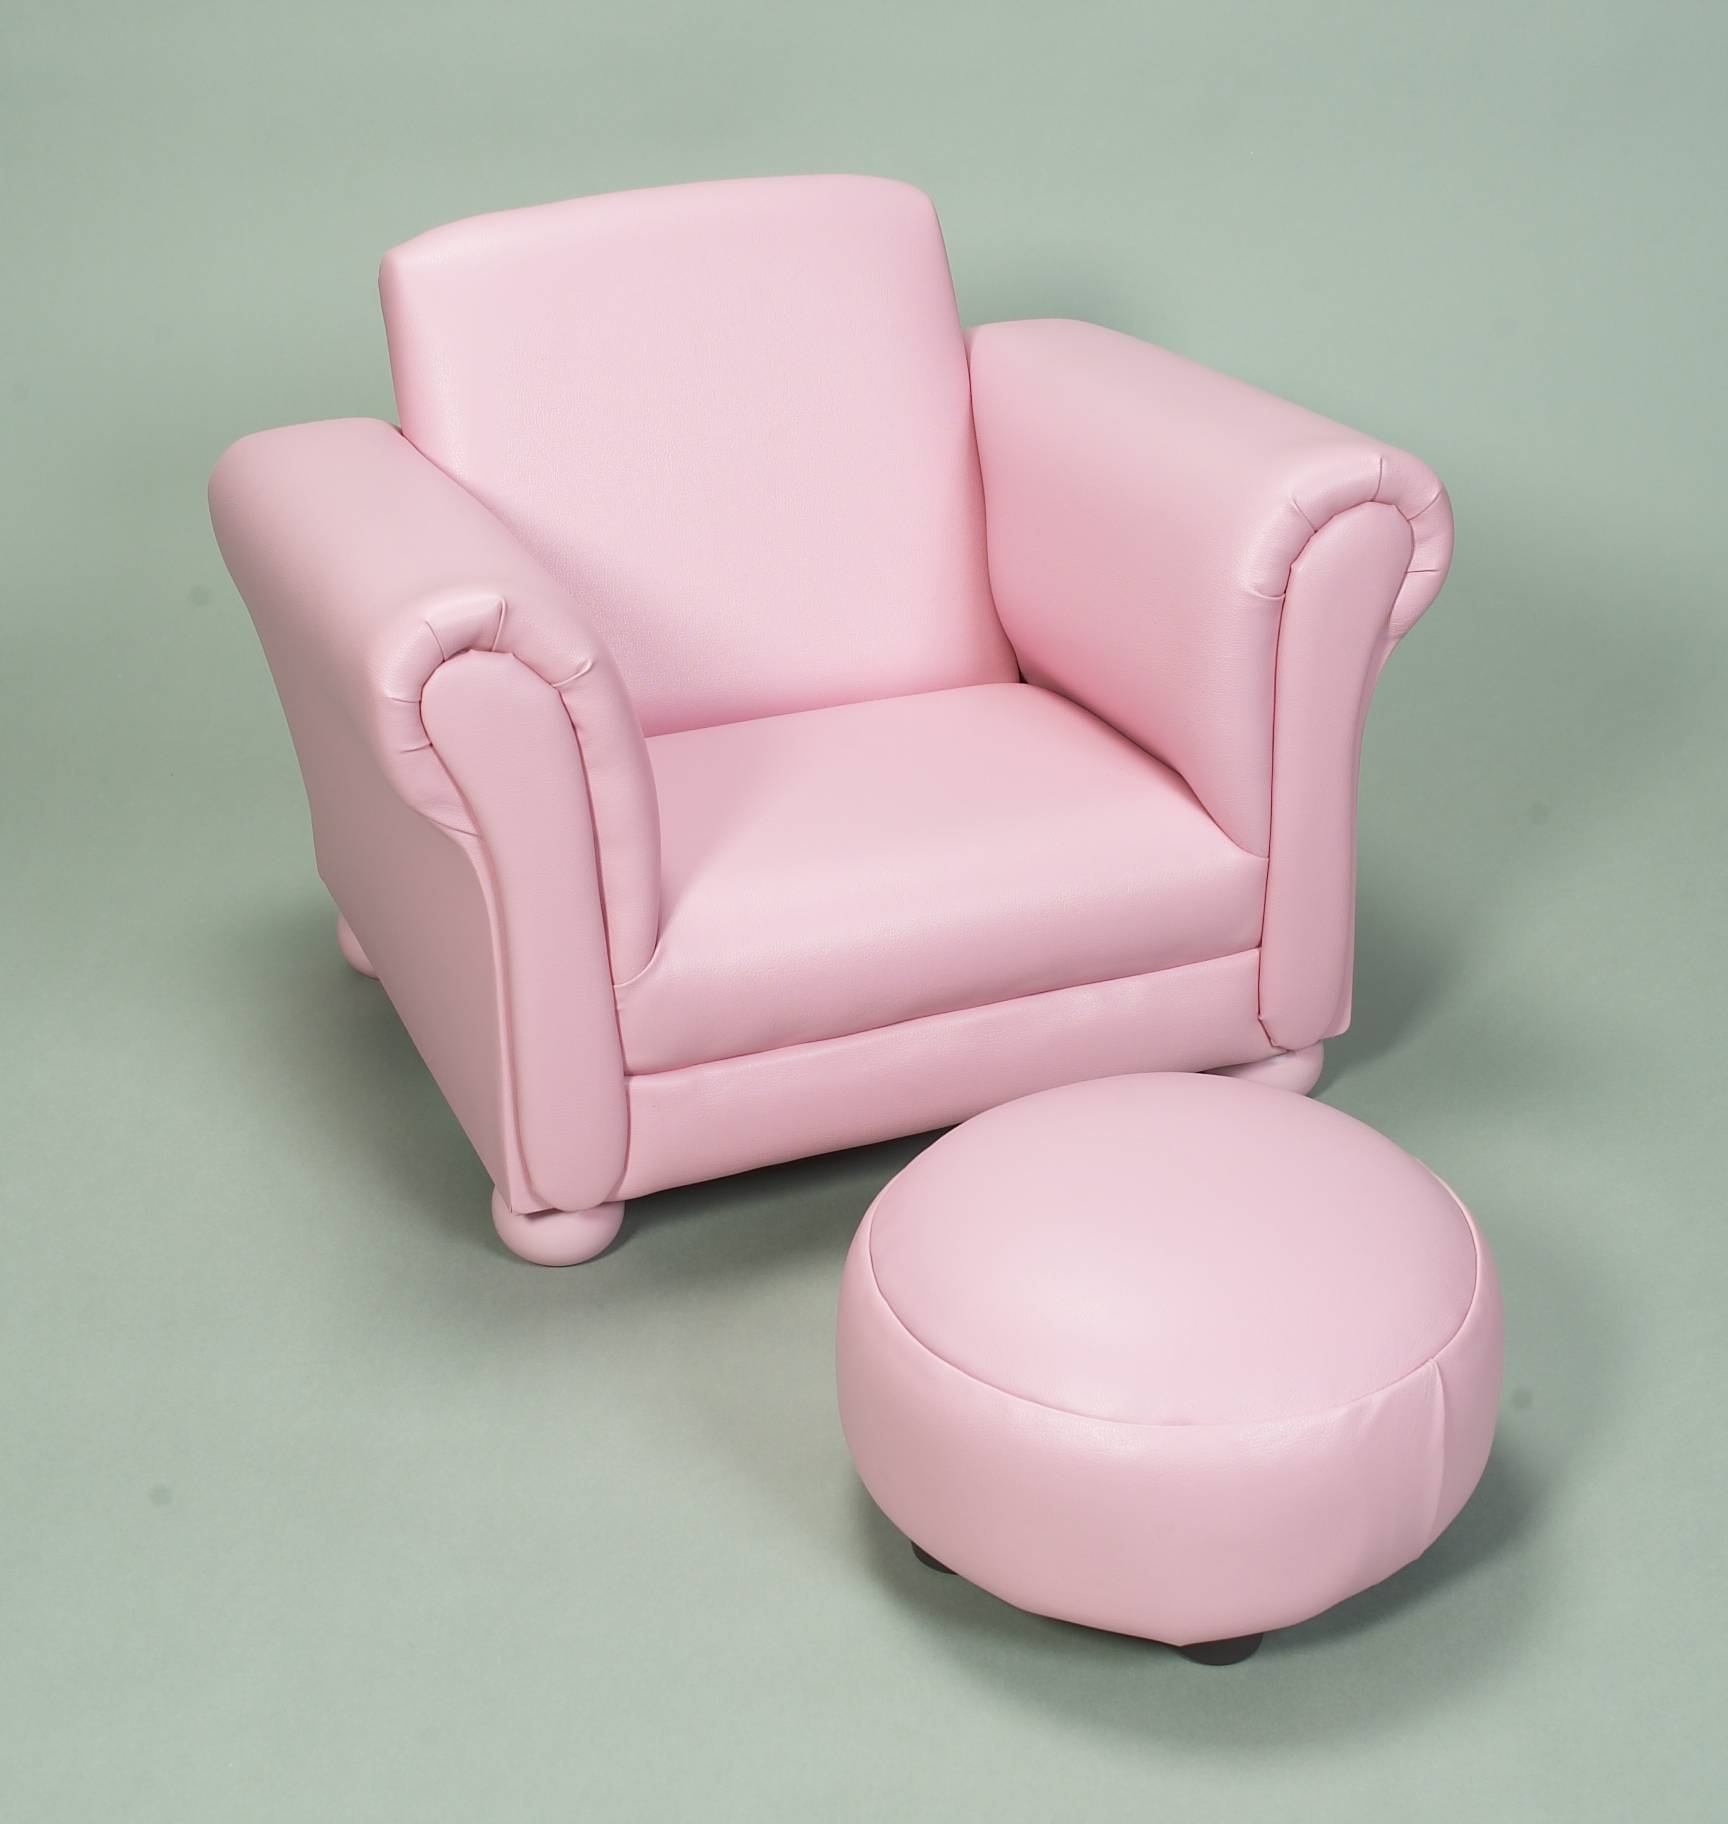 Pink Upholstered Chair Gift Mark Child 39s Upholstered Chair W Ottoman Pink